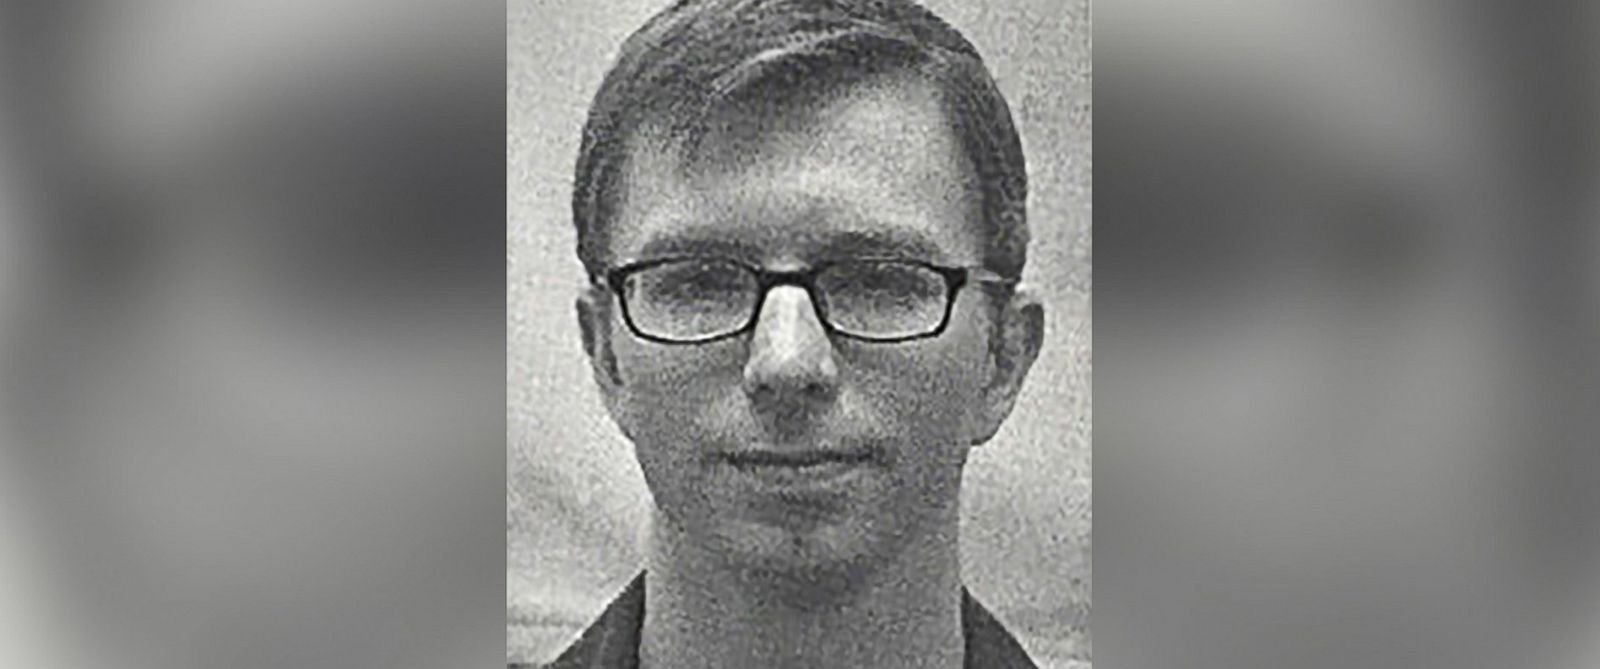 PHOTO: Chelsea Manning in an undated photo.